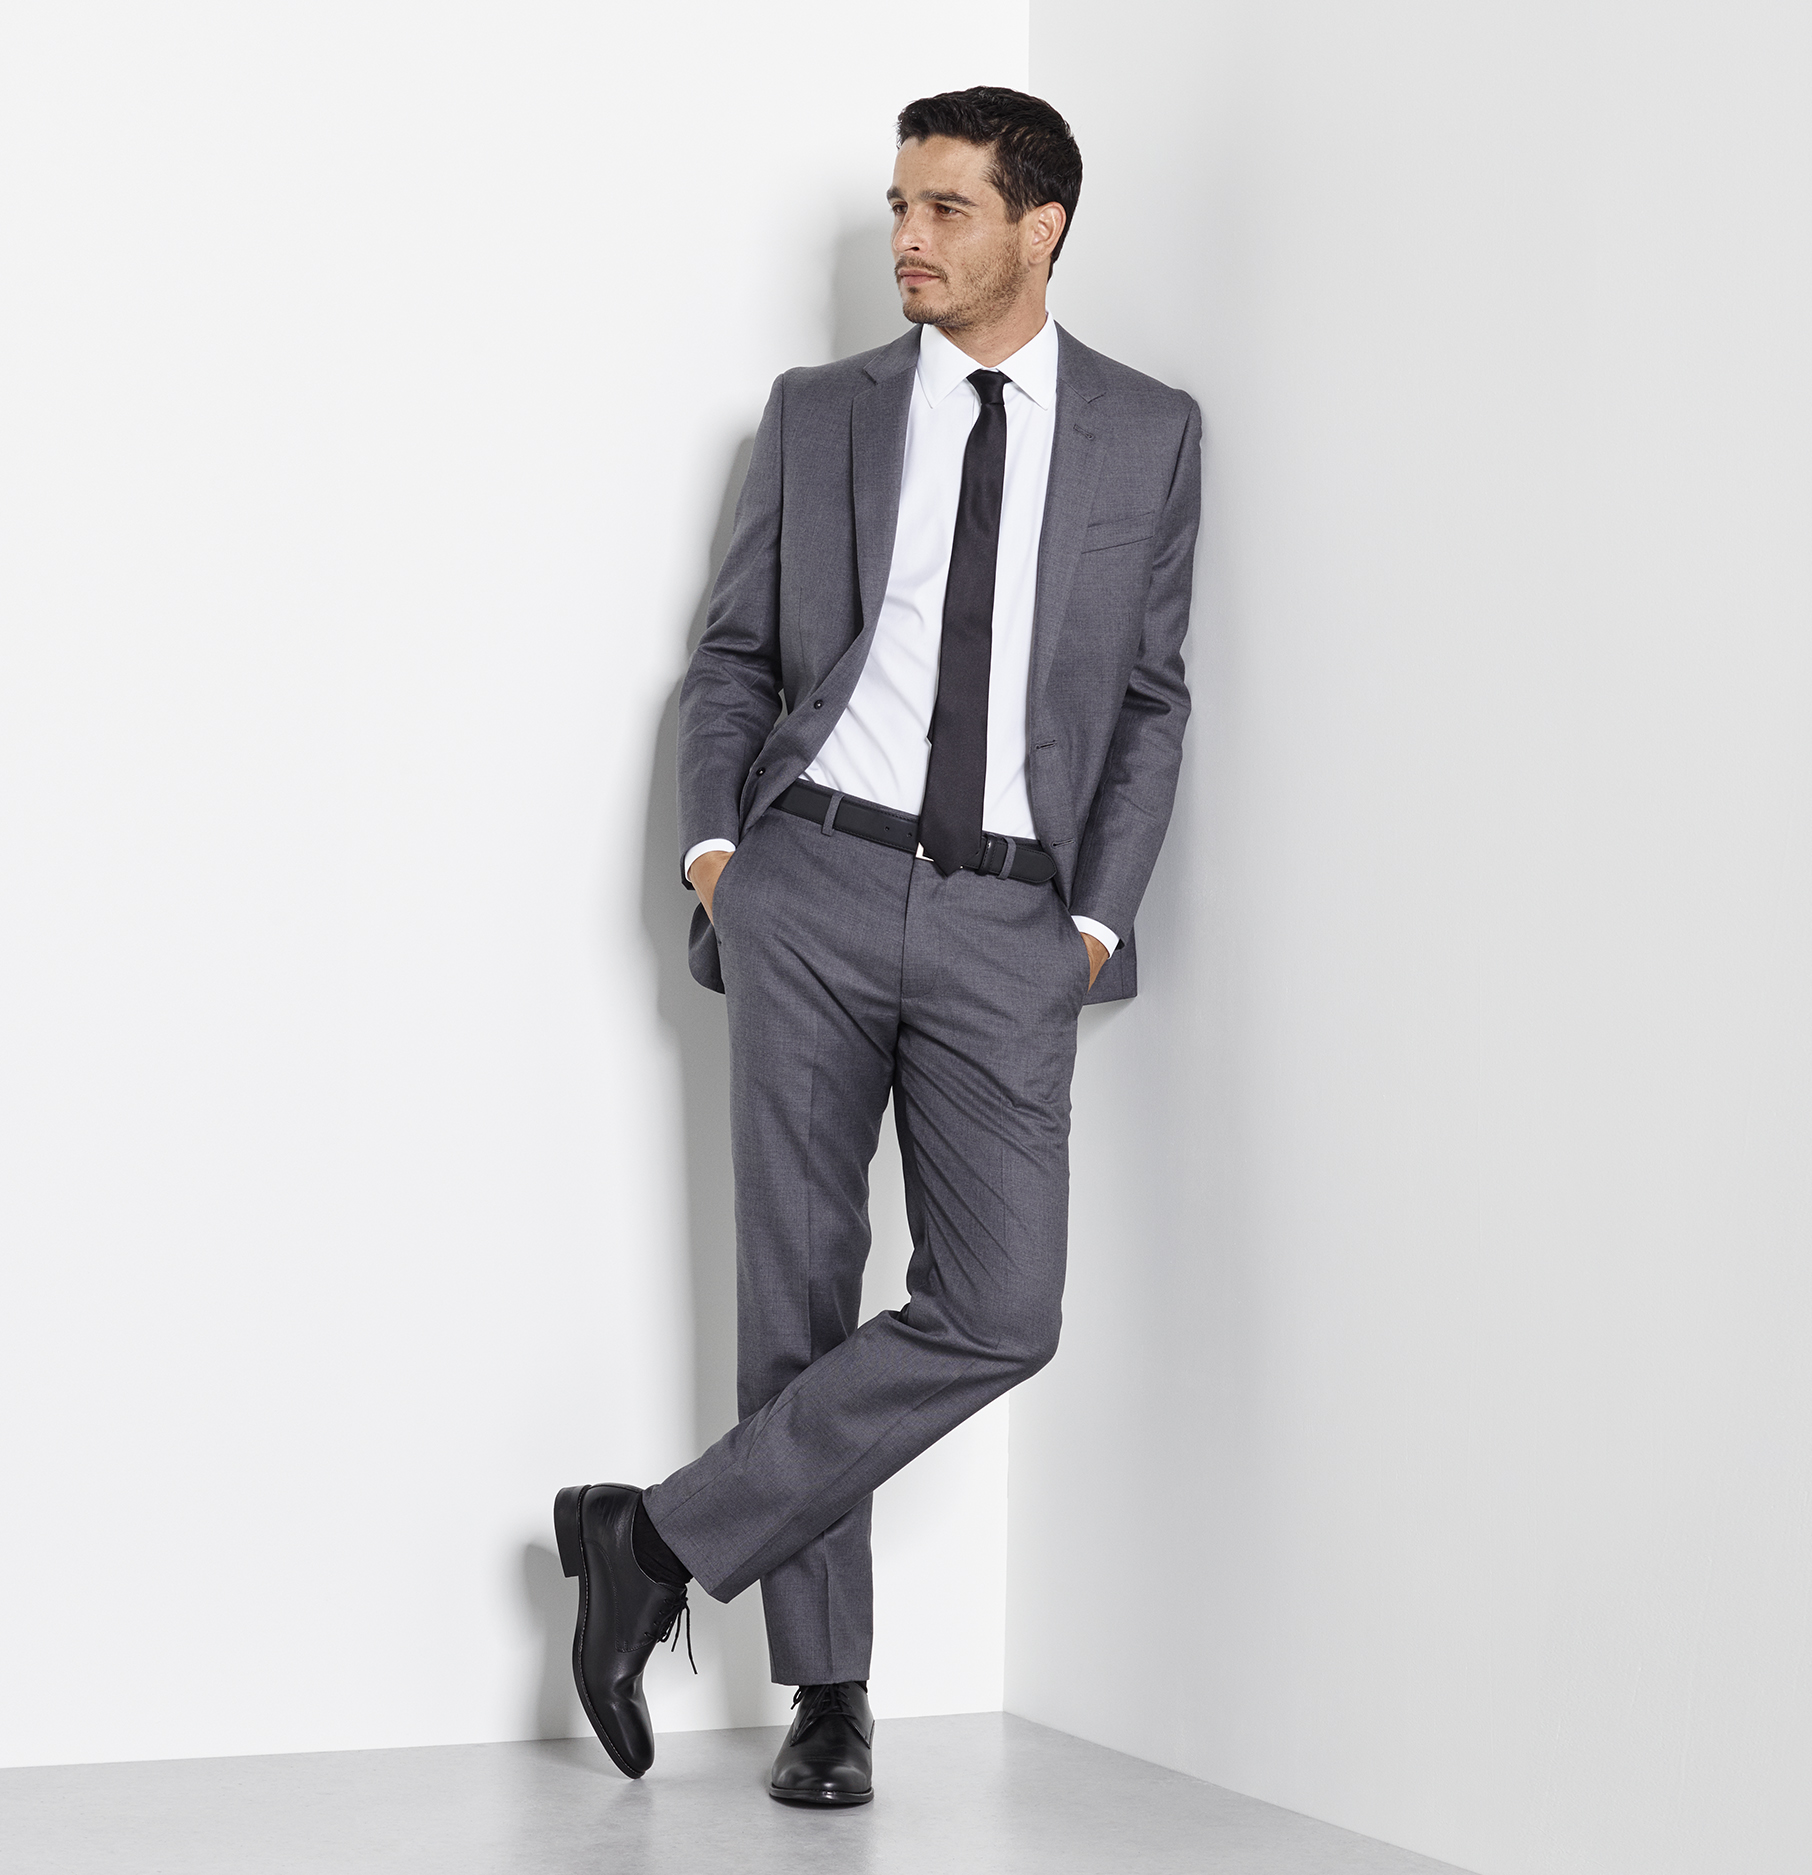 The grey suit: right suit for an interview